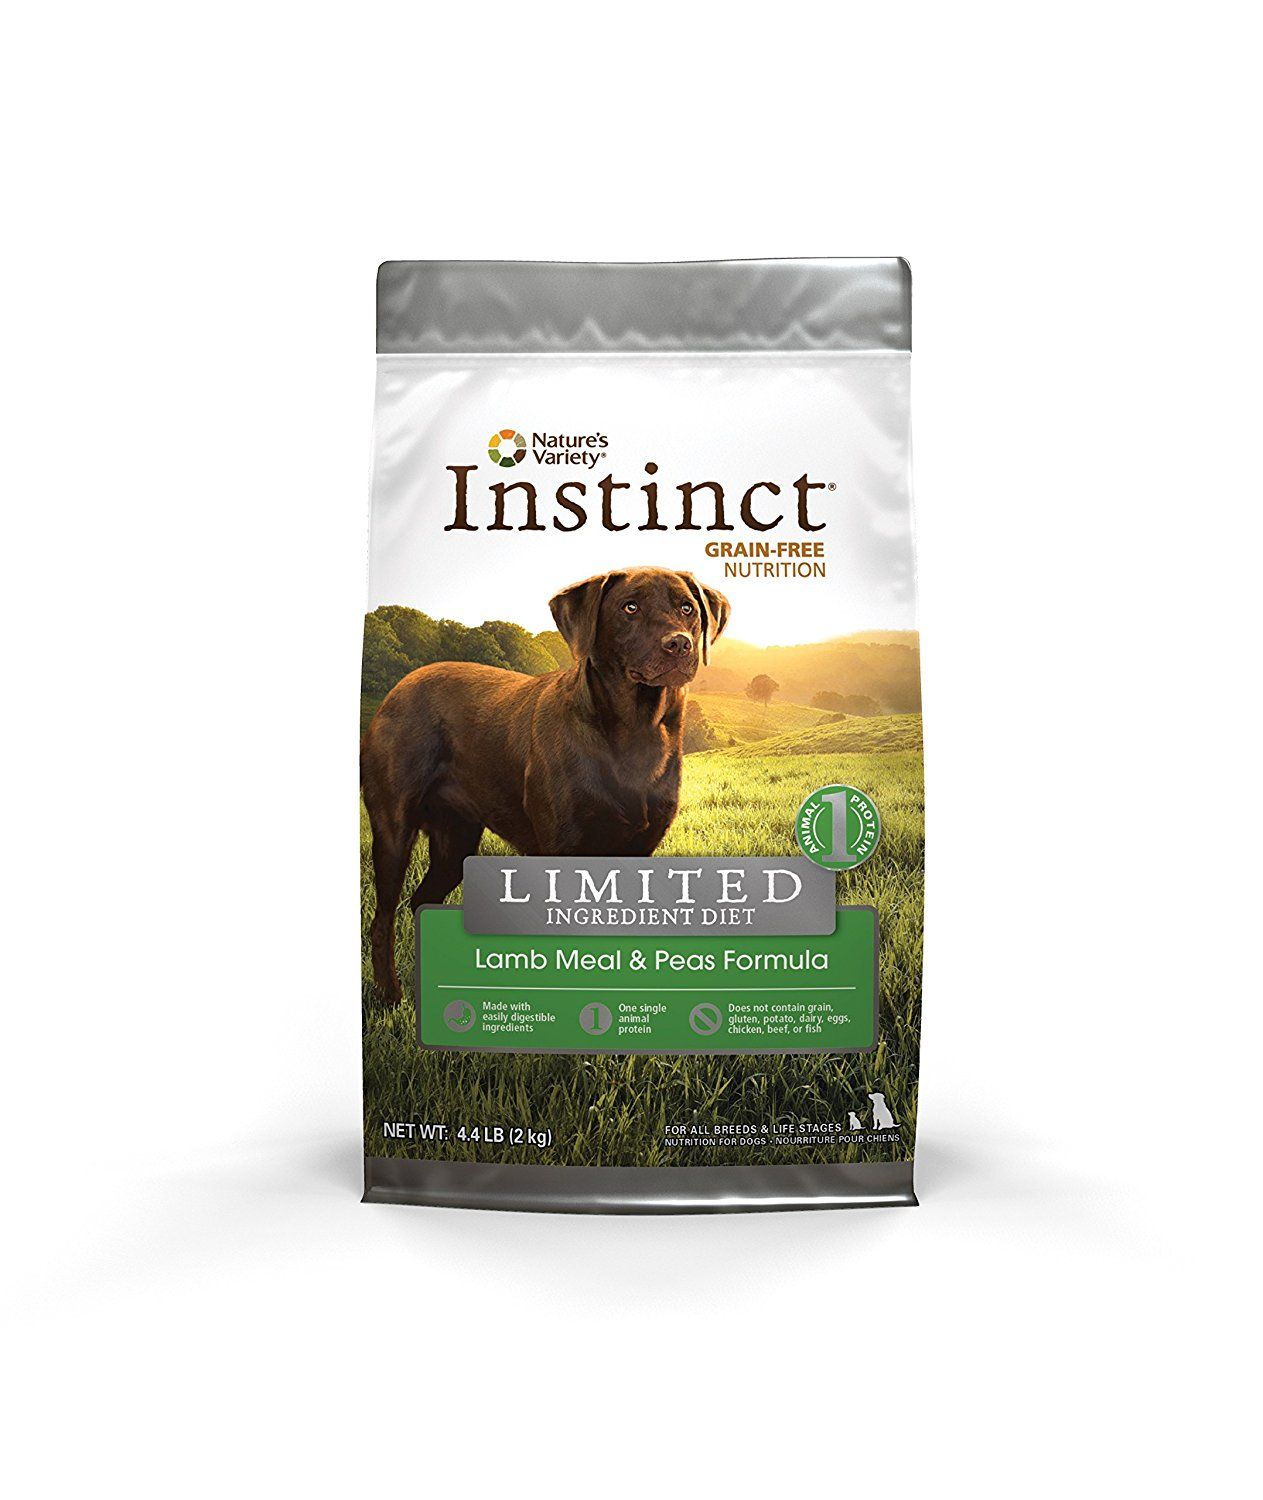 Nature's Variety Instinct Limited Ingredient Diet Grain